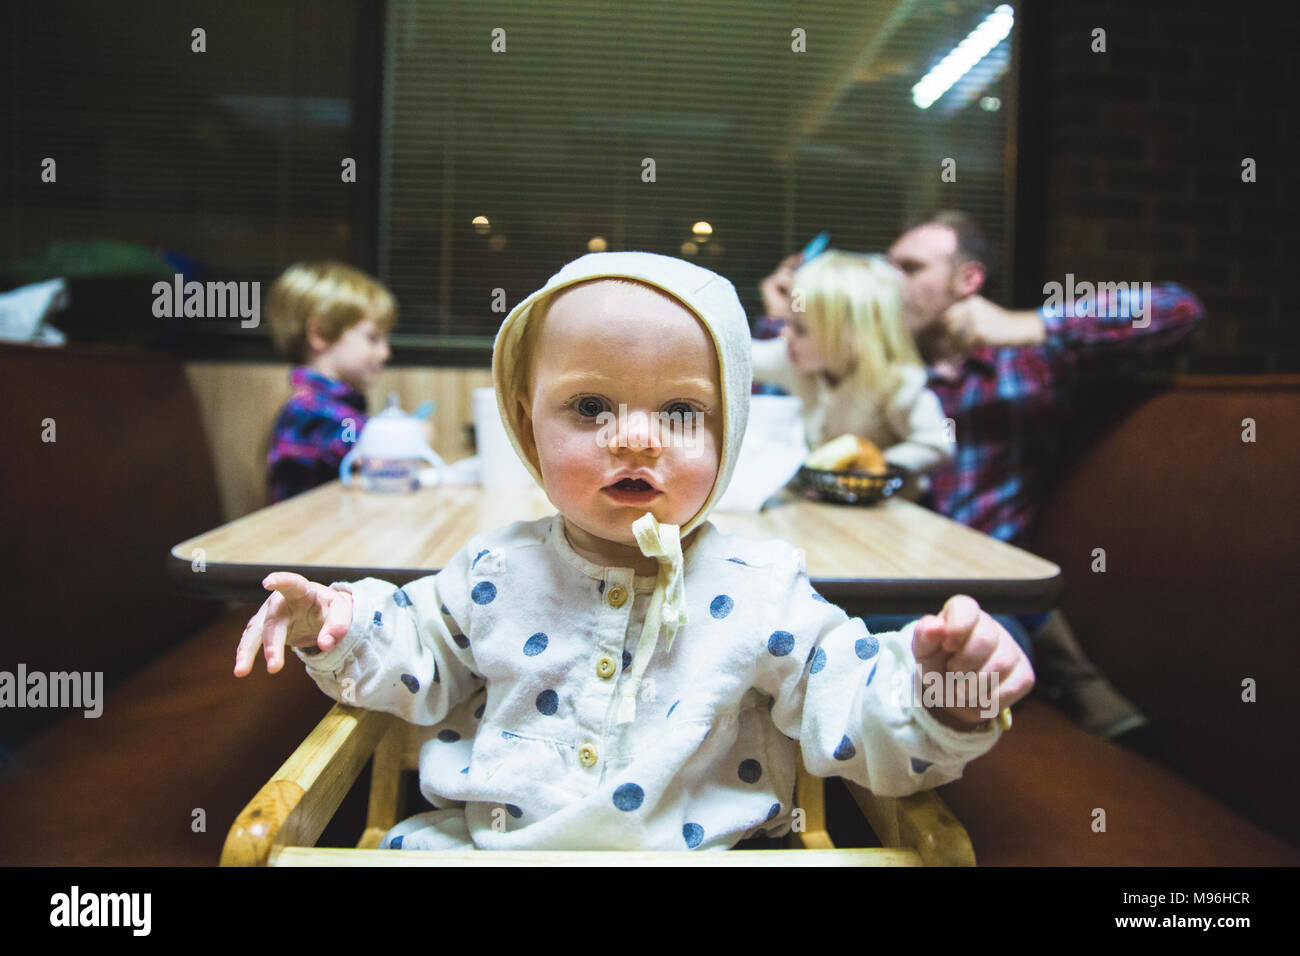 Baby looking at camera with family sat in diner booth behind - Stock Image